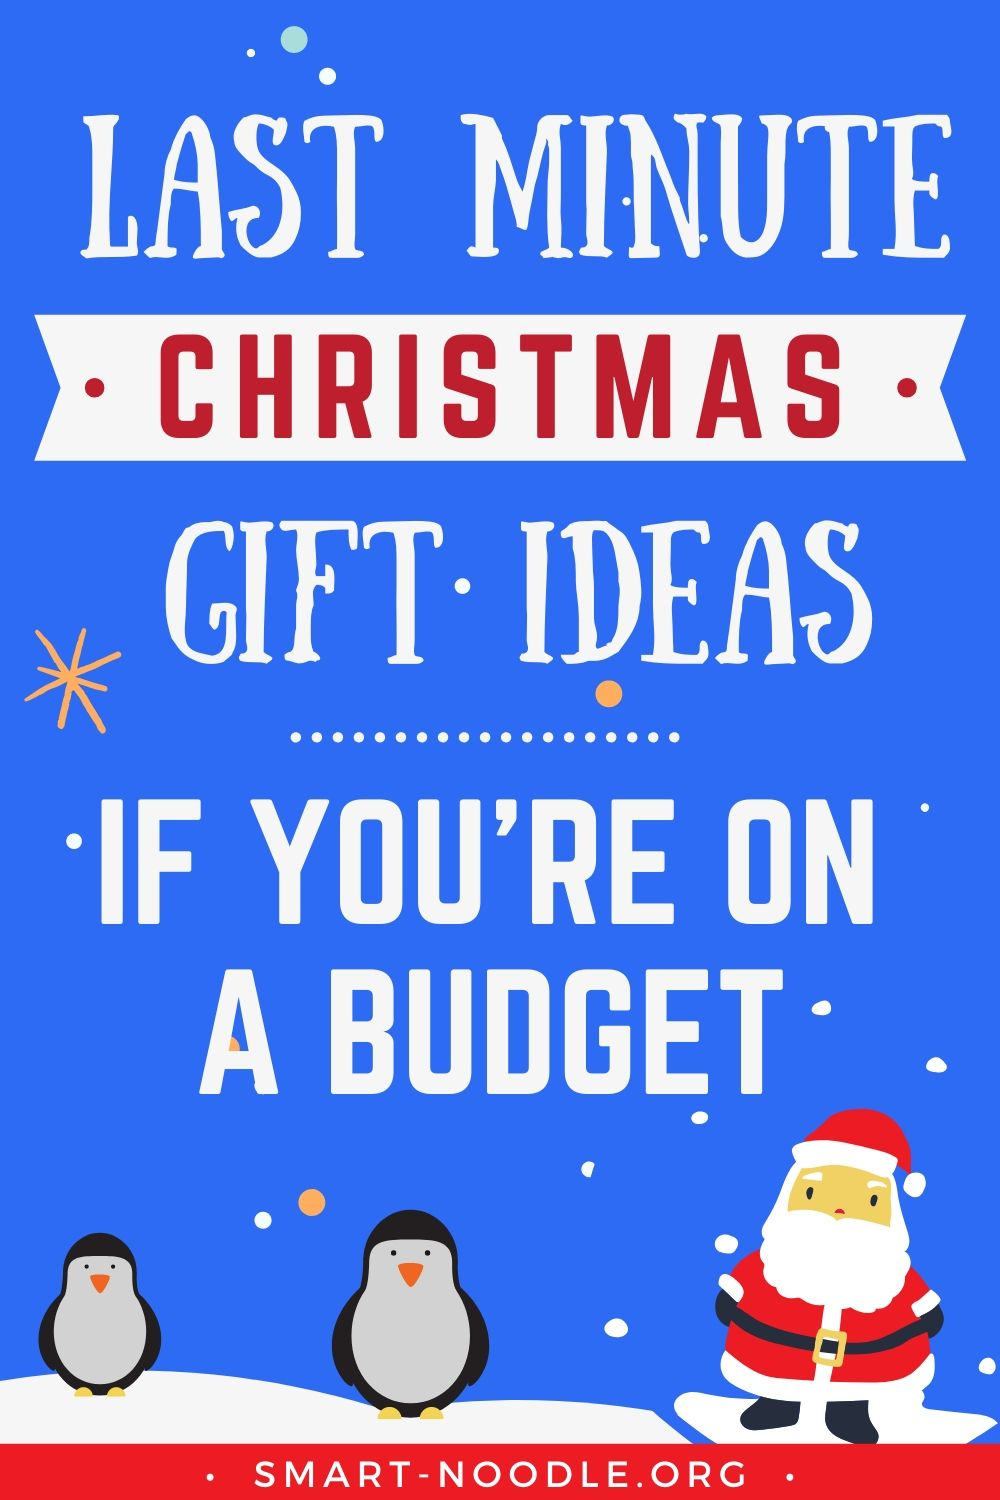 Photo of Last Minute Christmas Gift Ideas If You're On a Budget